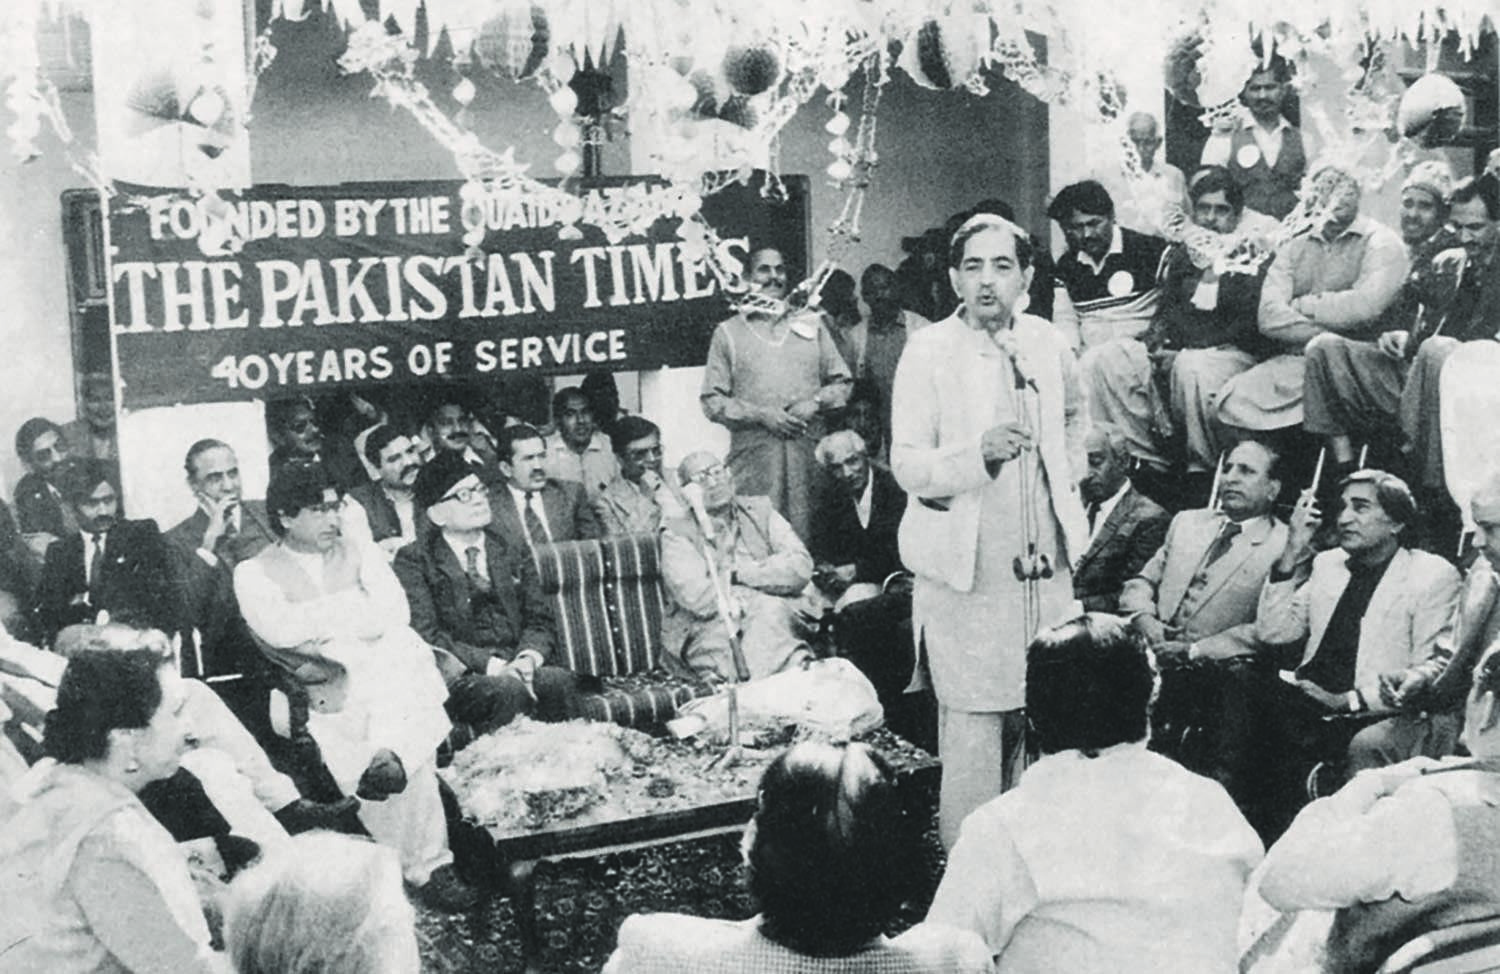 Mazhar Ali Khan addressing members of *Pakistan Times* staff at a reception (above) to mark four decades of his service.   Photo: Mazhar Ali Khan Family Archives